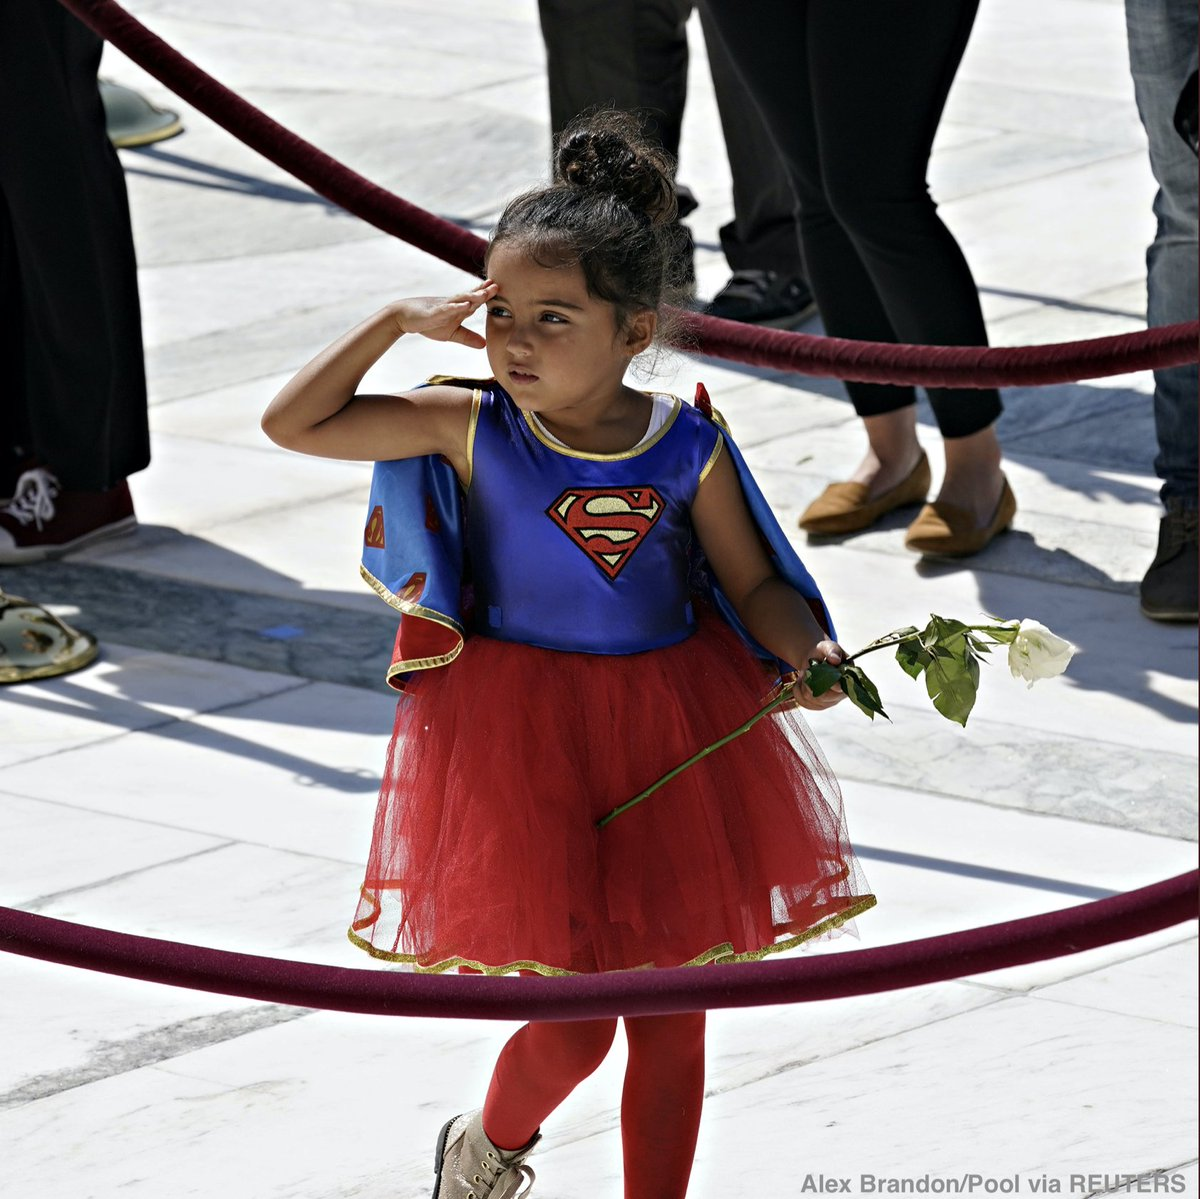 This little girl saluting Ruth Bader Ginsburg's casket on the steps of the US Supreme Court in her Superwoman costume with a rose in her hand just did me in. https://t.co/GgXb9Zjioh